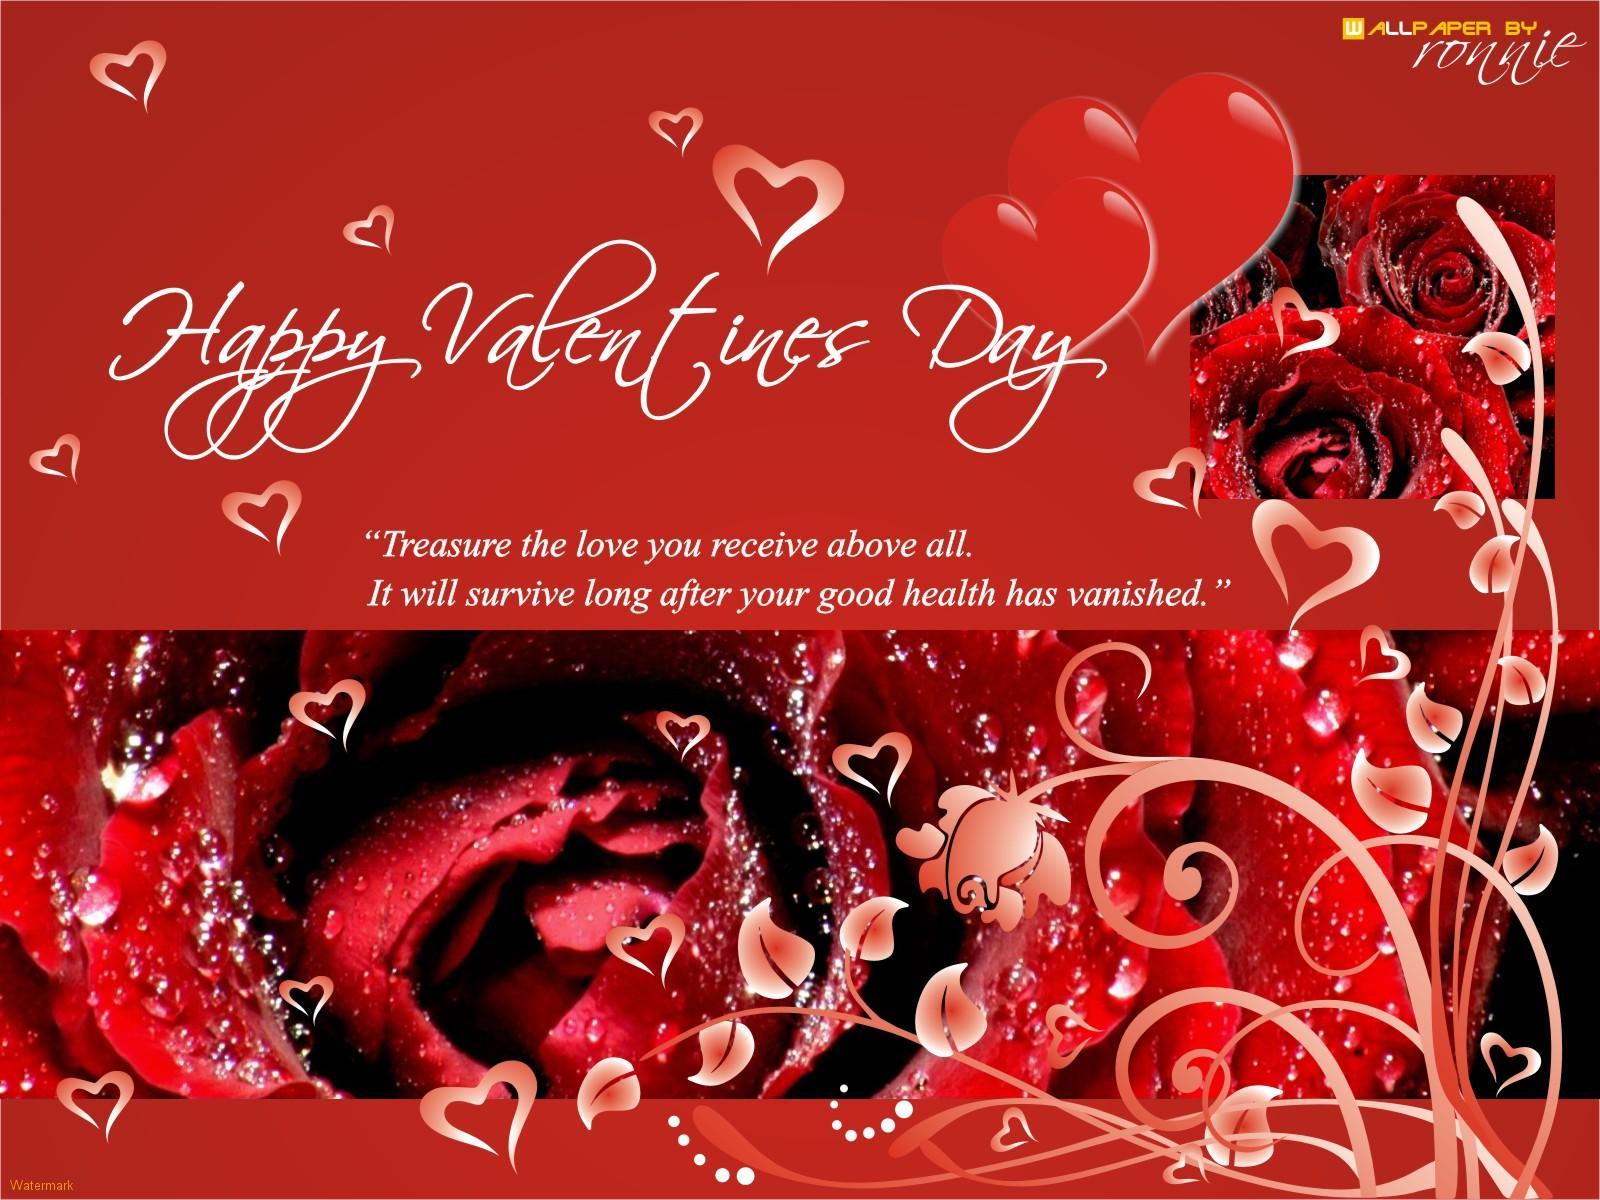 http://1.bp.blogspot.com/-LCnZU3cx3Cg/Tq6cfqFxOWI/AAAAAAAAA80/PZYFFfEK7i8/s1600/Free-Happy-Valentines-Day-Wallpapers.jpg